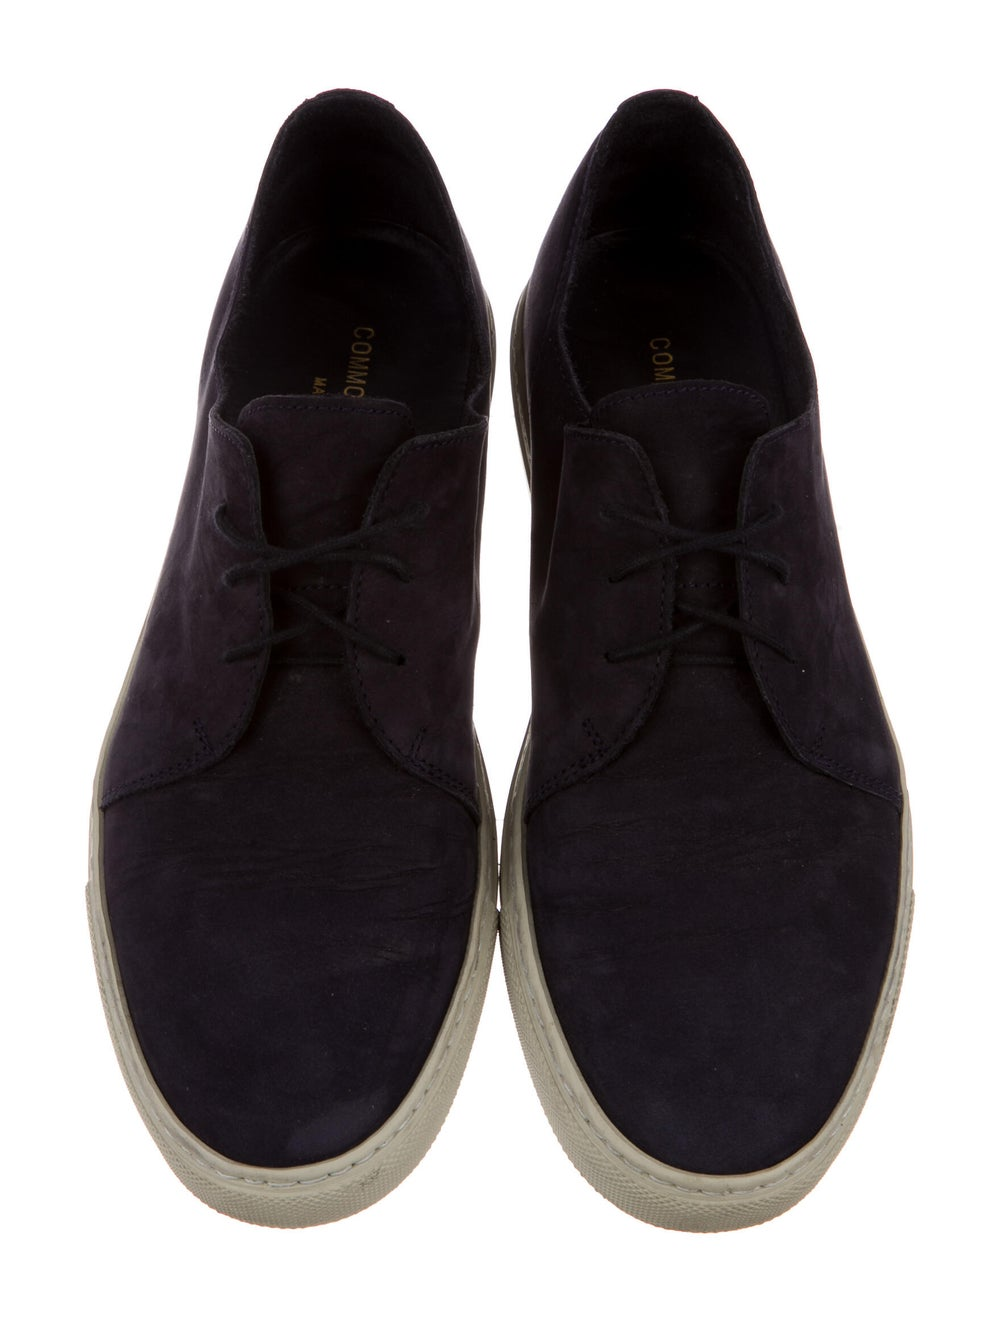 Common Projects Nubuck Sneakers Blue - image 3